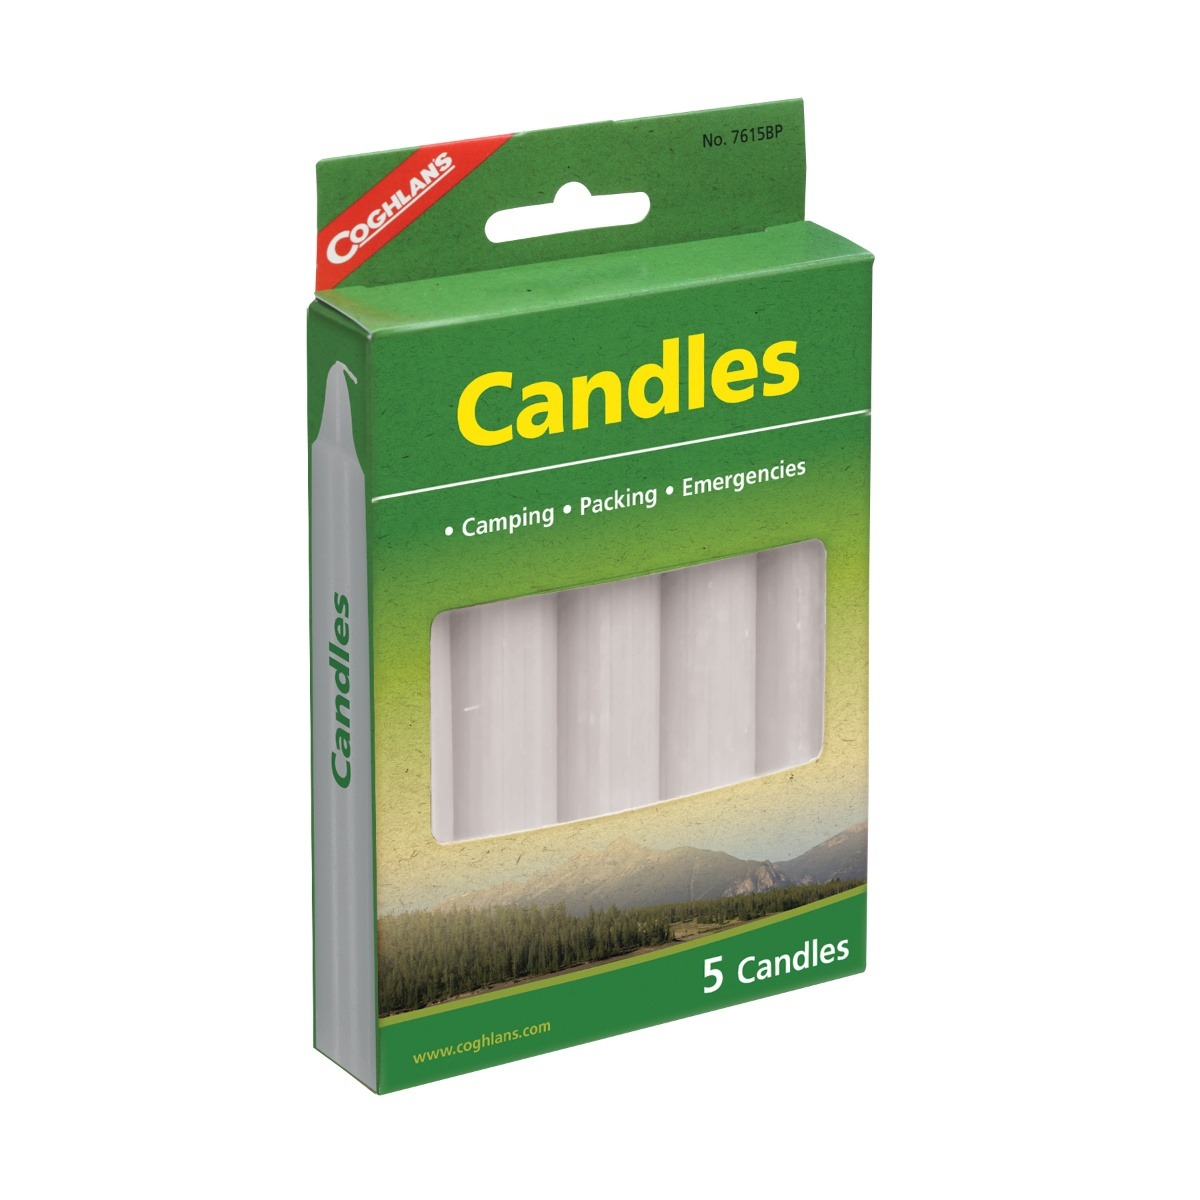 Coghlan Candles 5 Pack